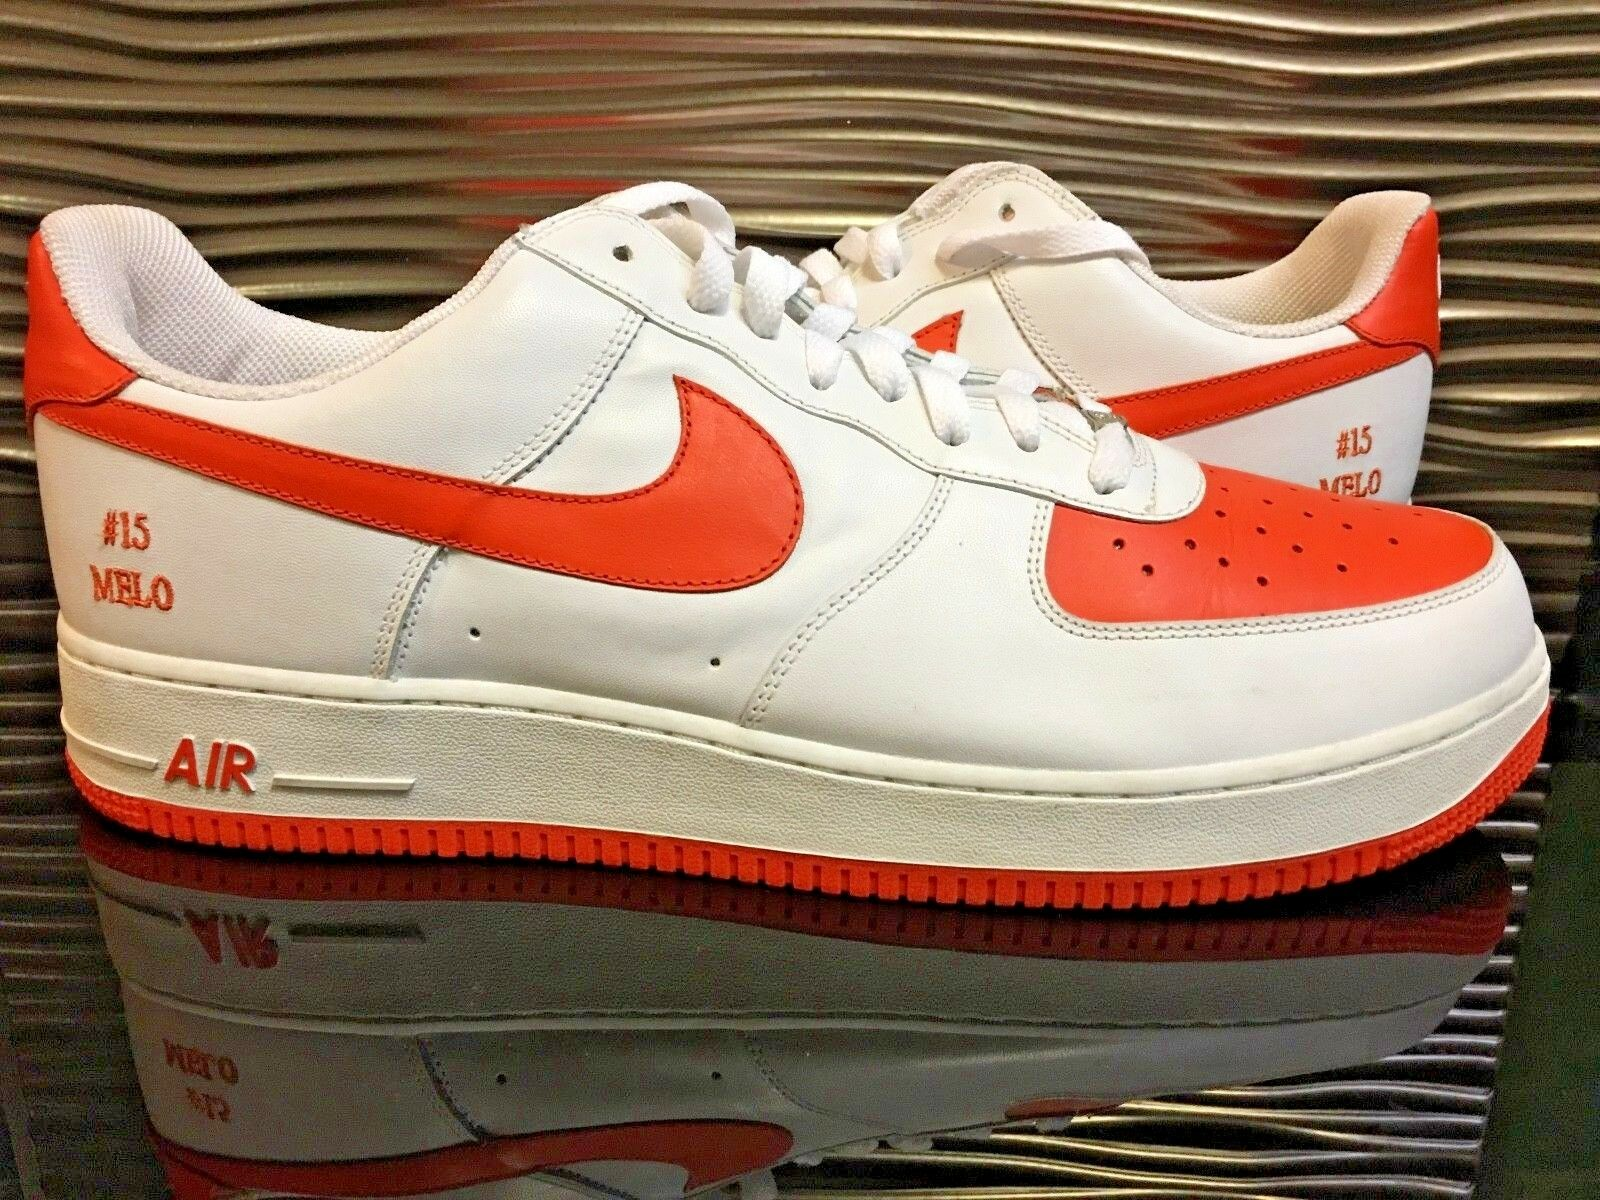 Nike Air Force 1 Low Sample Melo PE Sample Low DS Hommes Taille 15 blanc /Orange Holy Grail 7e23ef